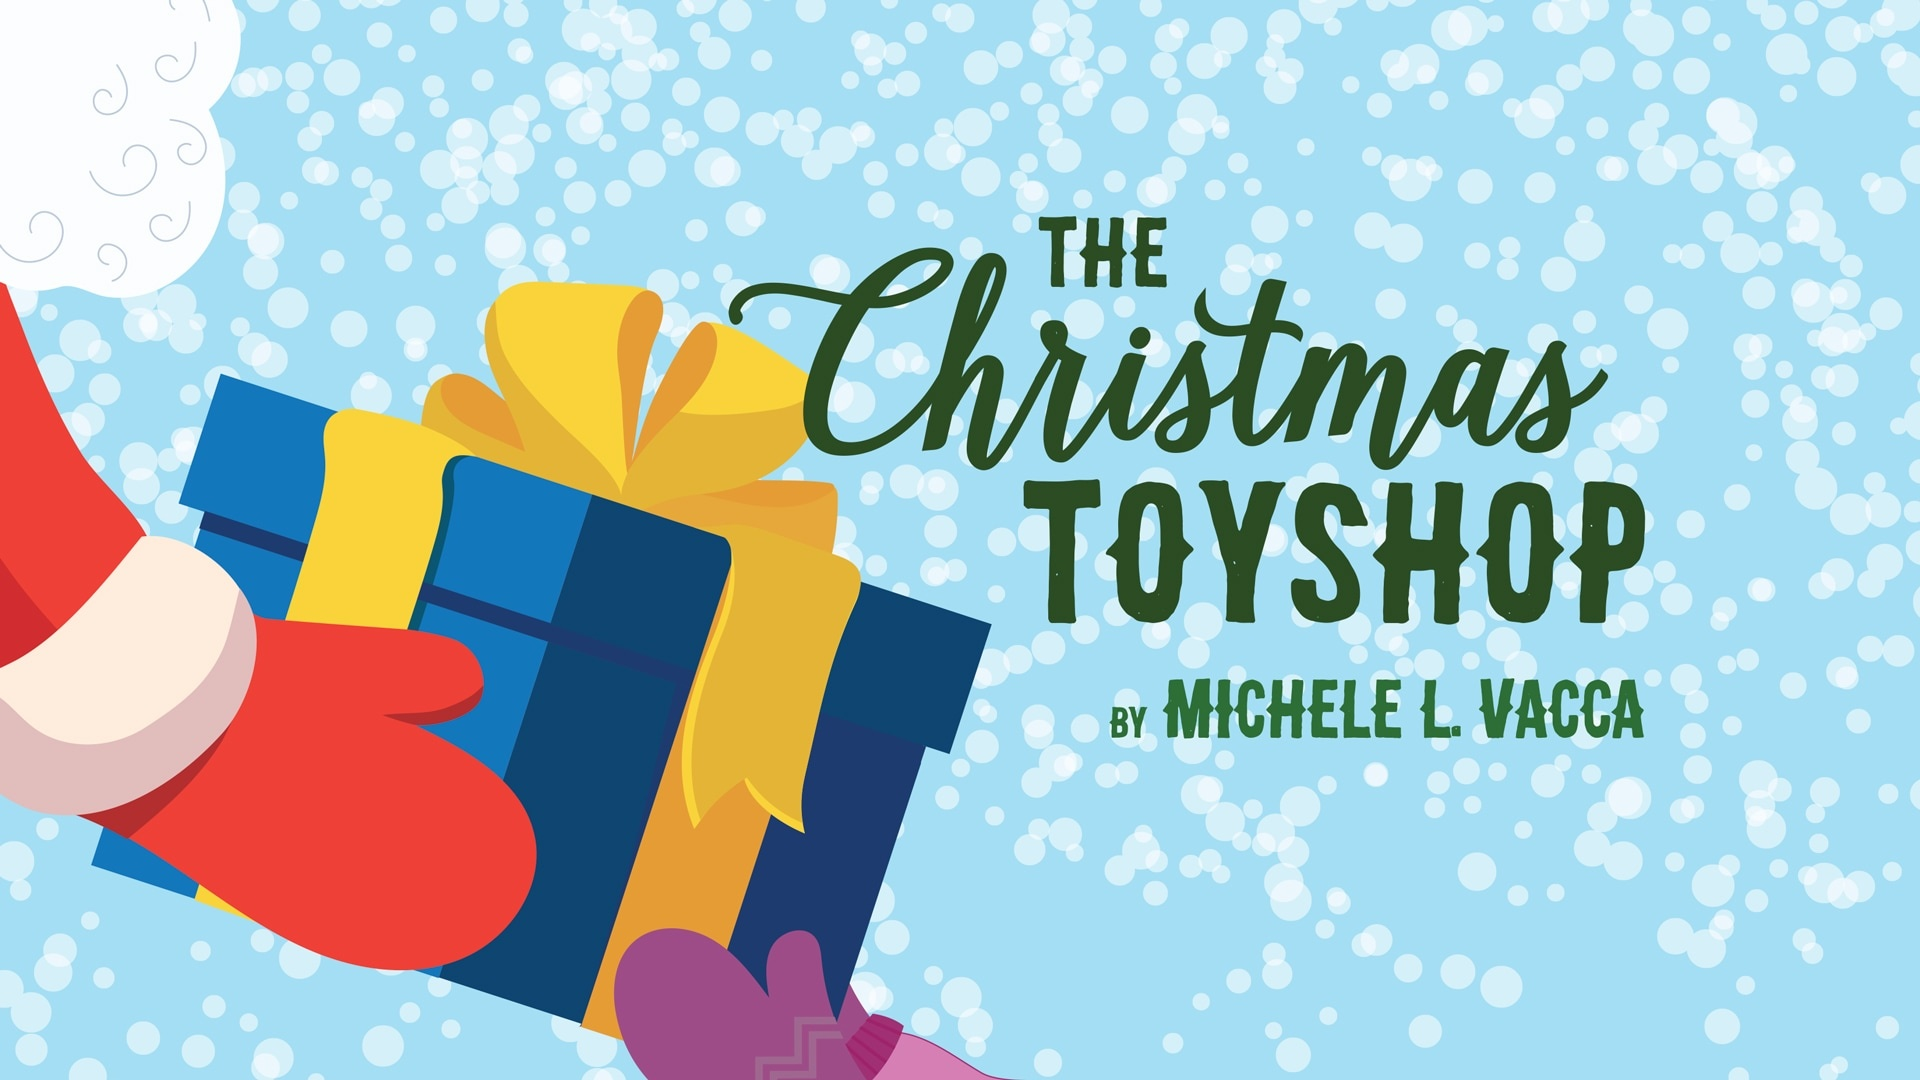 The Christmas Toyshop by Michele L Vacca - show graphic